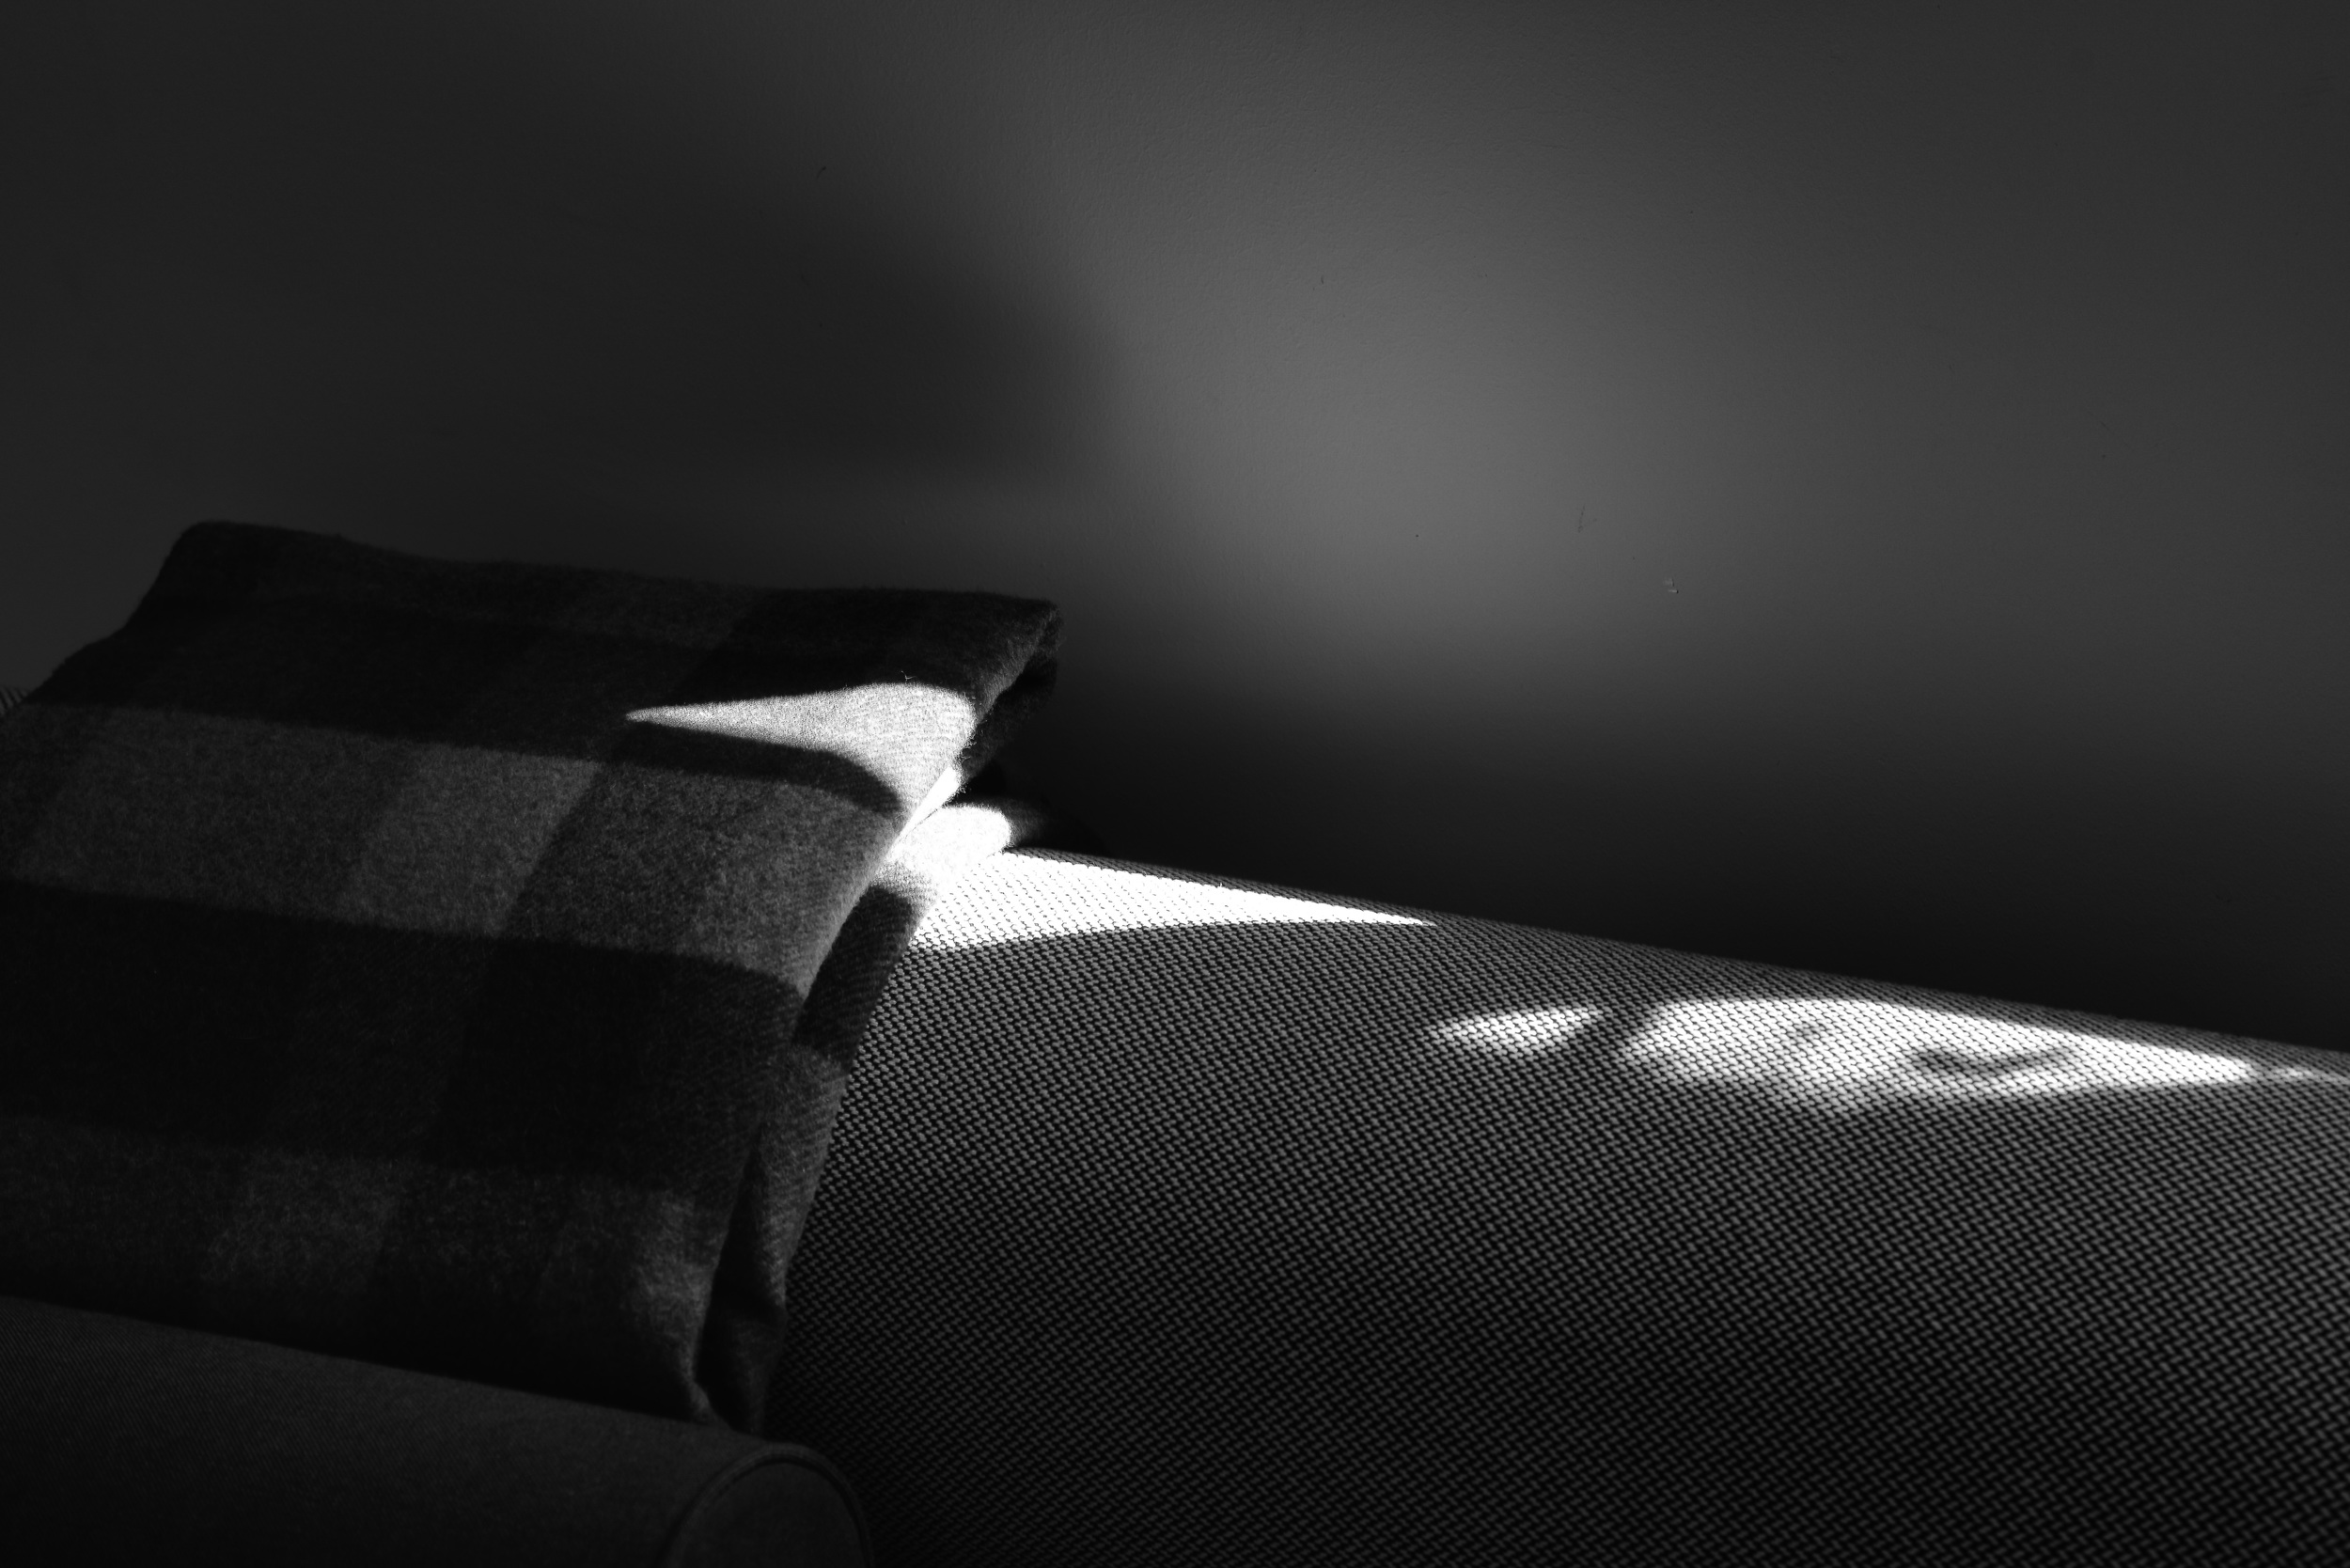 Sofa, Mid-morning, West Hollywood. (c) Jared Fortunato | Photography